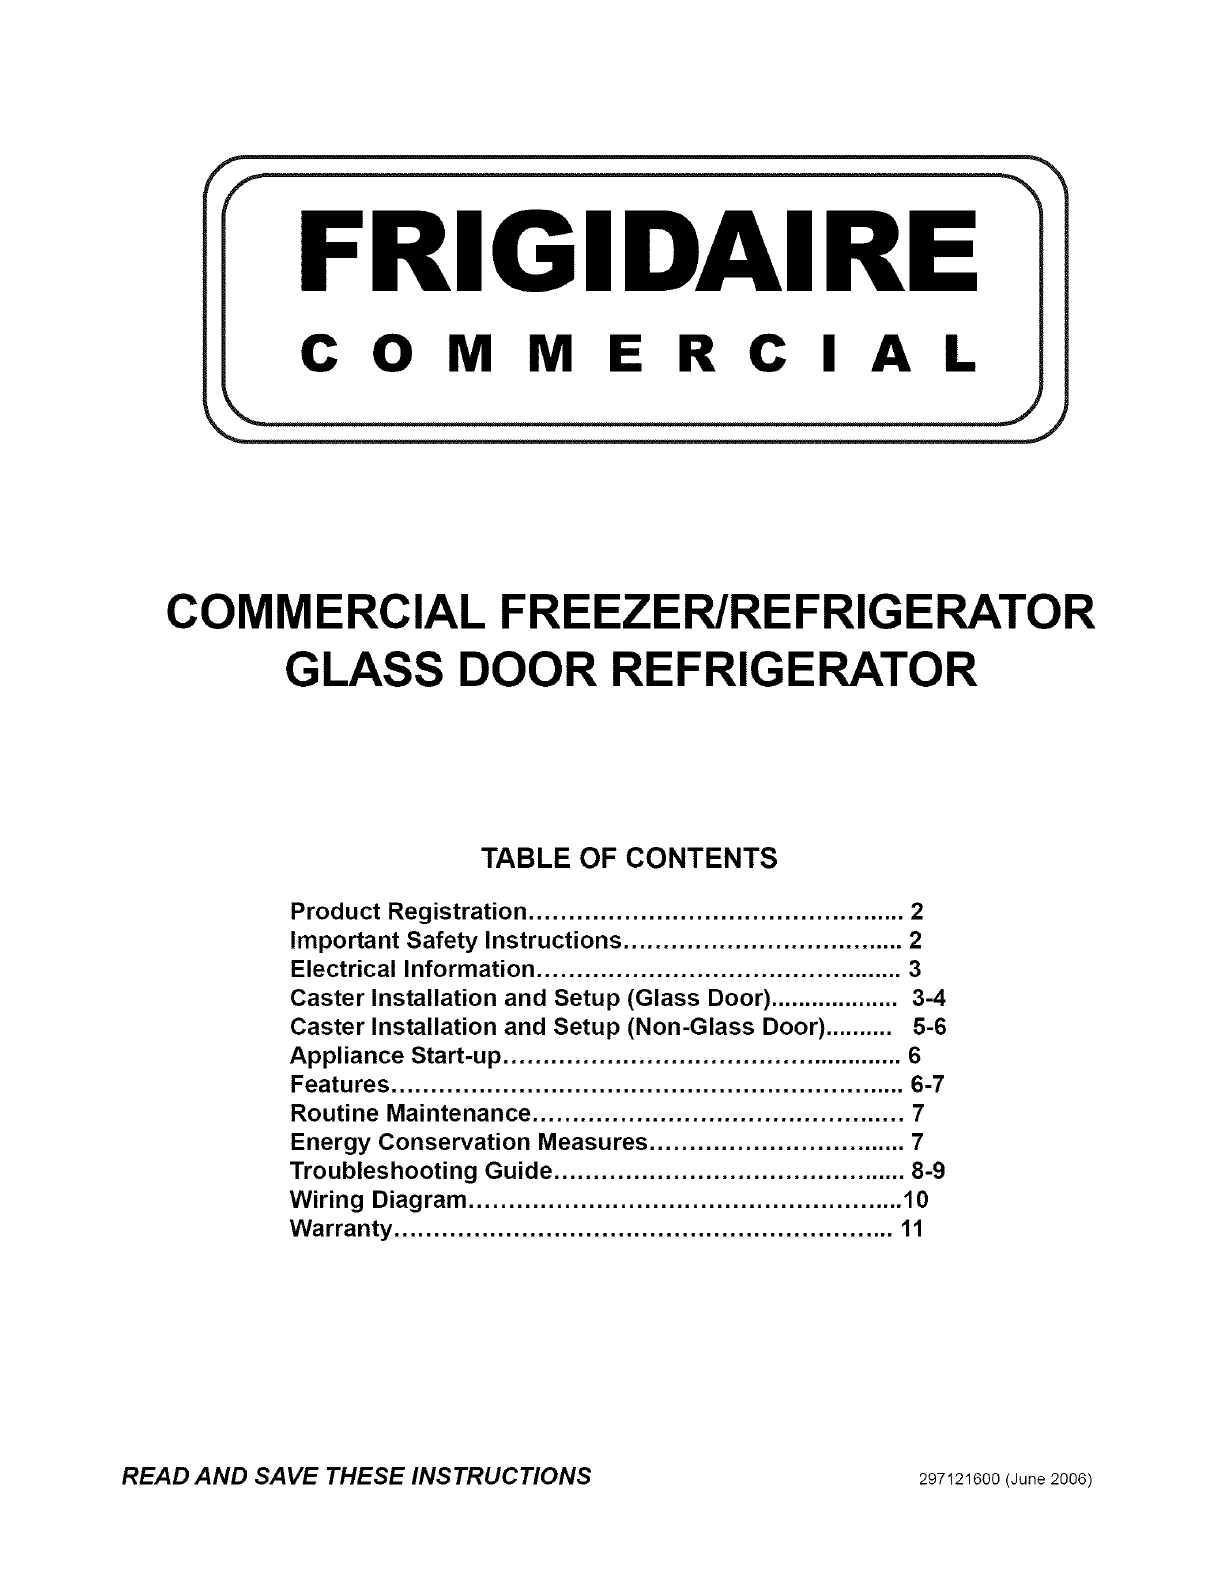 Frigidaire Fcfs201lfb3 User Manual Freezer Manuals And Guides L0609487 Commercial Evaporator Wiring Diagram